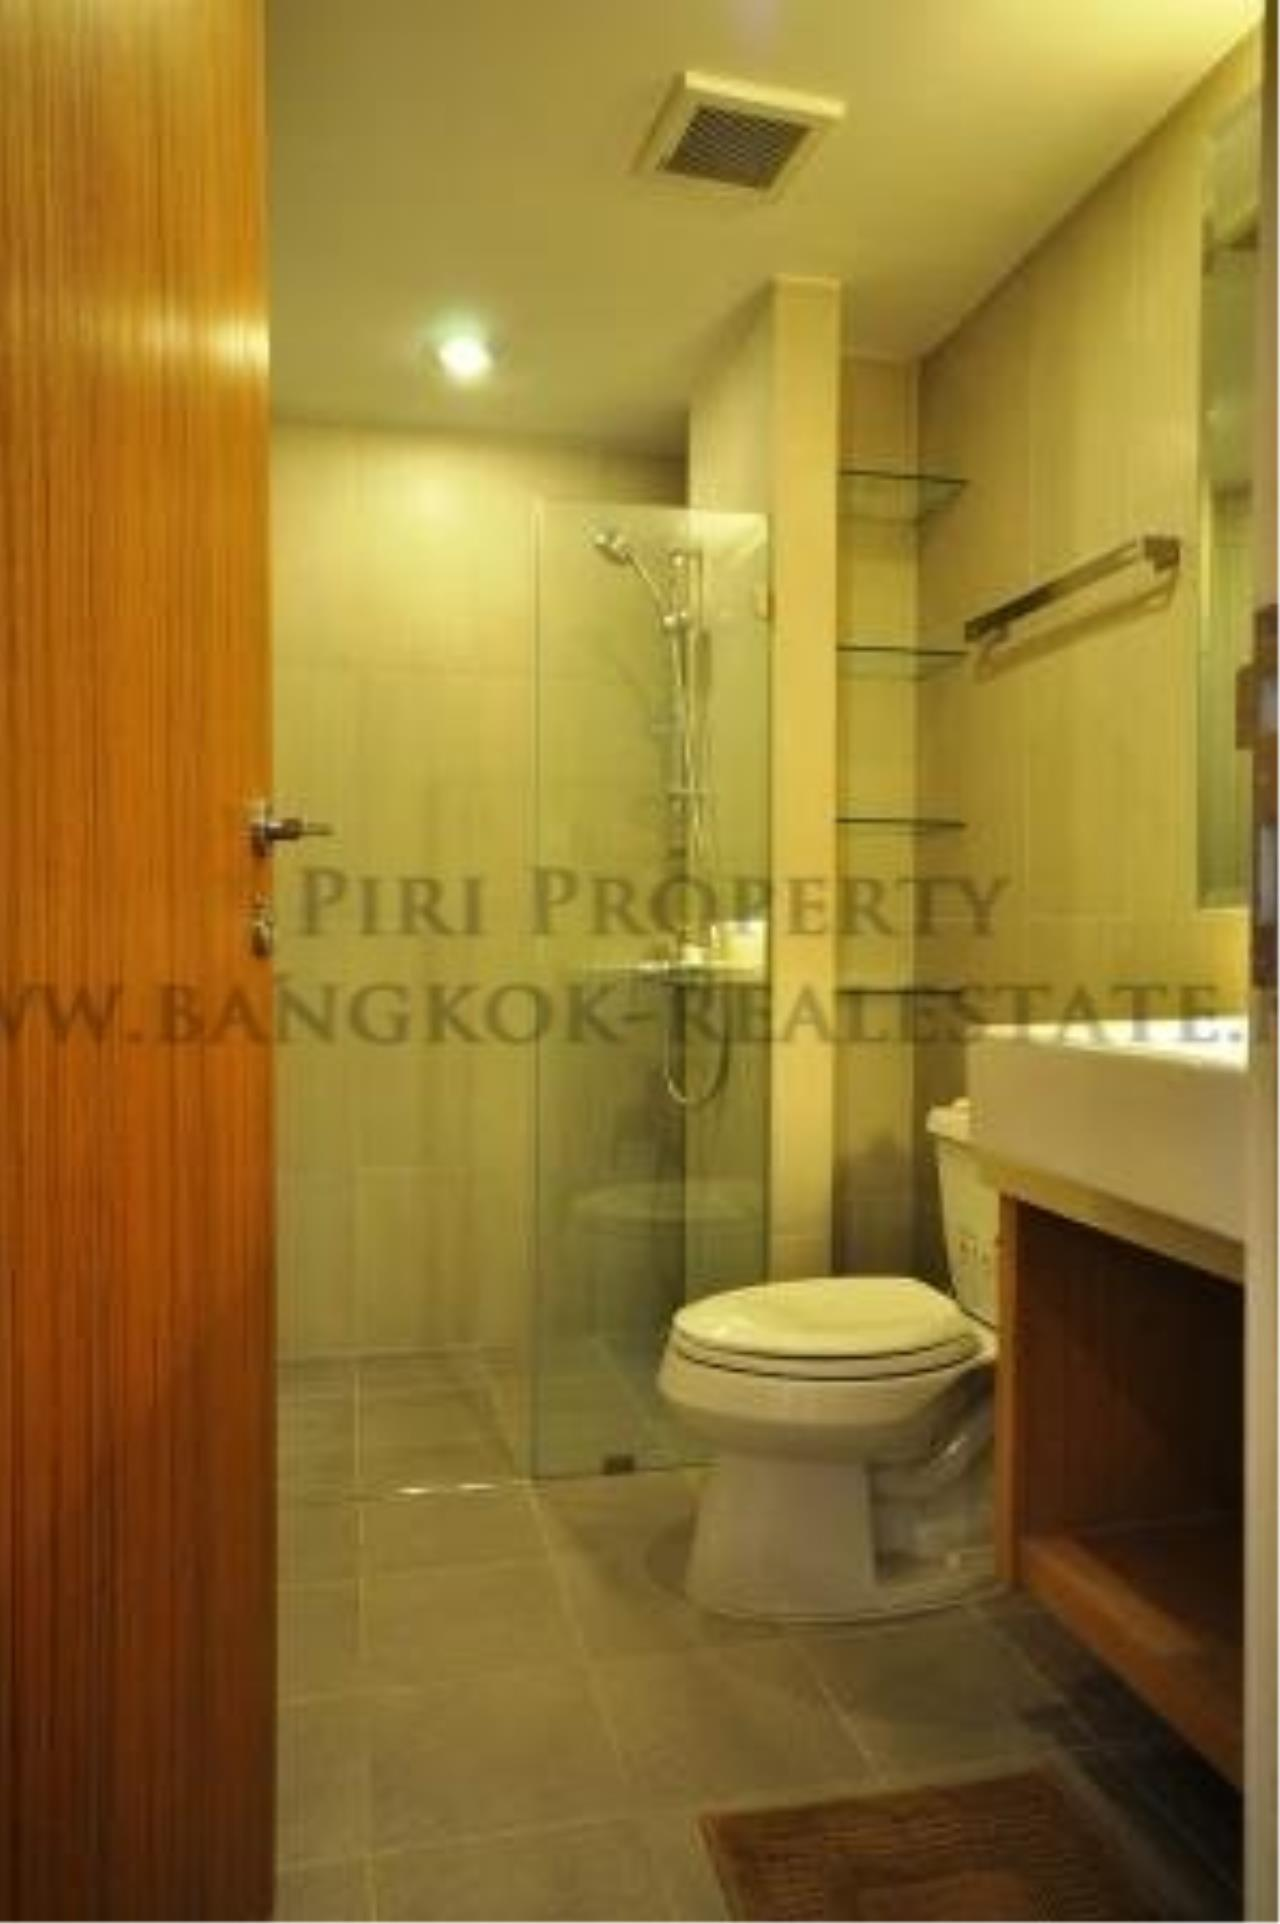 Piri Property Agency's Nice and cozy condo unit in Ekkamai for rent - Zenith Place Sukhumvit 42 5